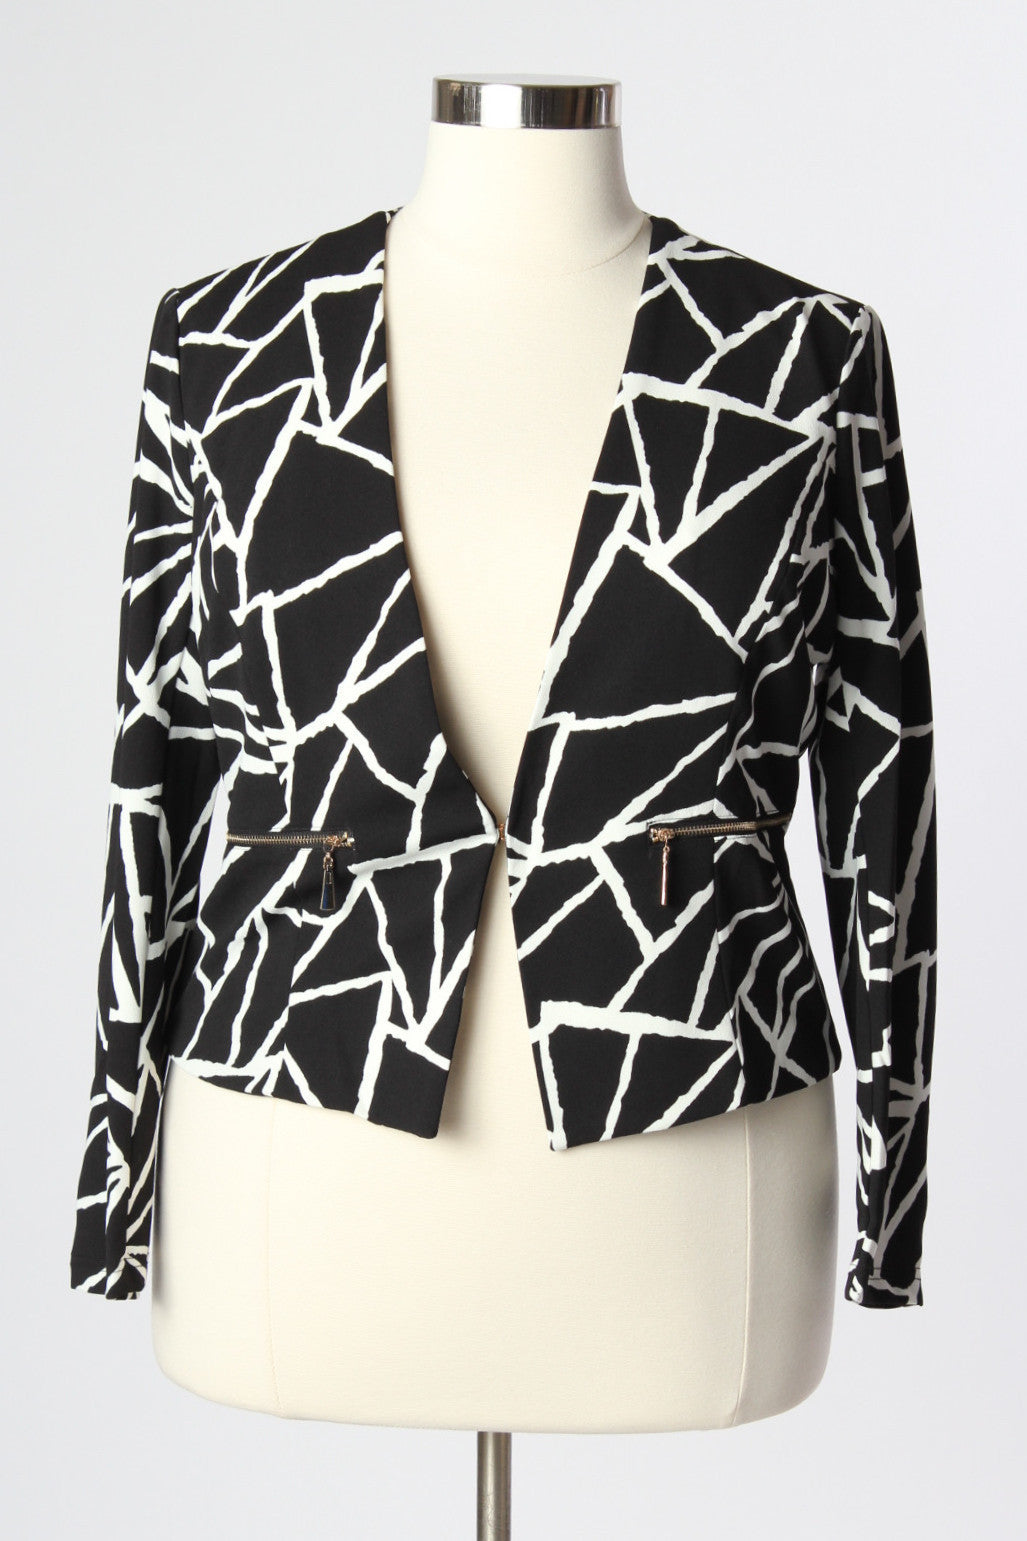 Mix up your work wear wardrobe and feel fearless in this fun and stylish abstract printed blazer. Pair with our White Leggings and pumps to make you feel like the powerful woman you are! This Blazer has a 1